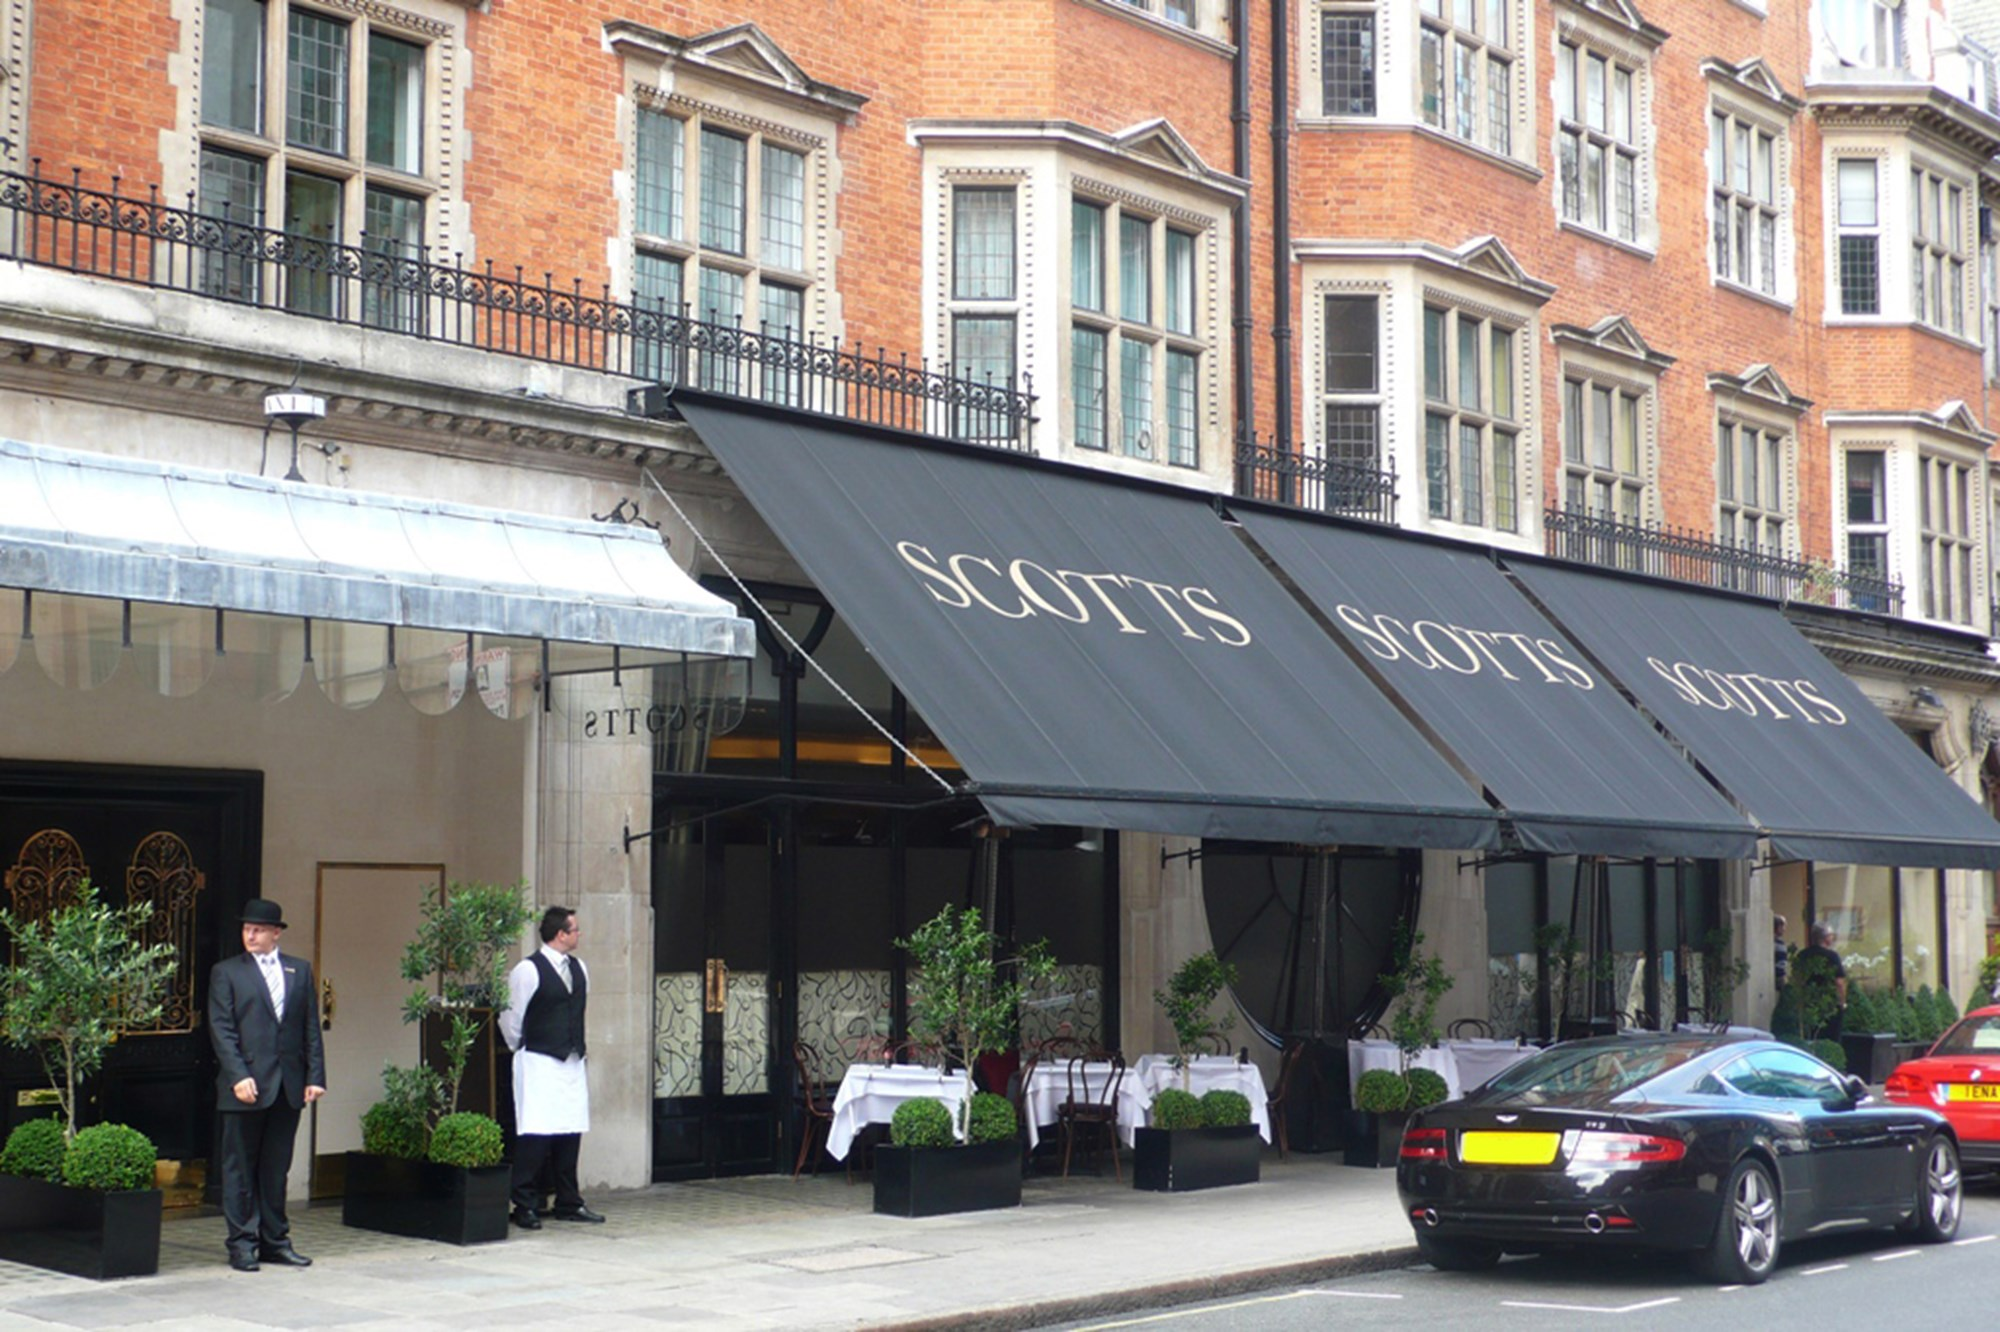 Unique Scotts  Seafood  Fish Restaurant Mayfair With Entrancing Londons Favourite Restaurant Serving The Finest Fish Shellfish And  Seasonal Game With Amazing Carluccios Covent Garden Also Garden Centres In Windsor In Addition Building A Garden Studio And Garden Party Buffet Ideas As Well As Singapore Botanic Gardens Location Additionally Gardening Services Brighton From Scottsrestaurantcom With   Entrancing Scotts  Seafood  Fish Restaurant Mayfair With Amazing Londons Favourite Restaurant Serving The Finest Fish Shellfish And  Seasonal Game And Unique Carluccios Covent Garden Also Garden Centres In Windsor In Addition Building A Garden Studio From Scottsrestaurantcom